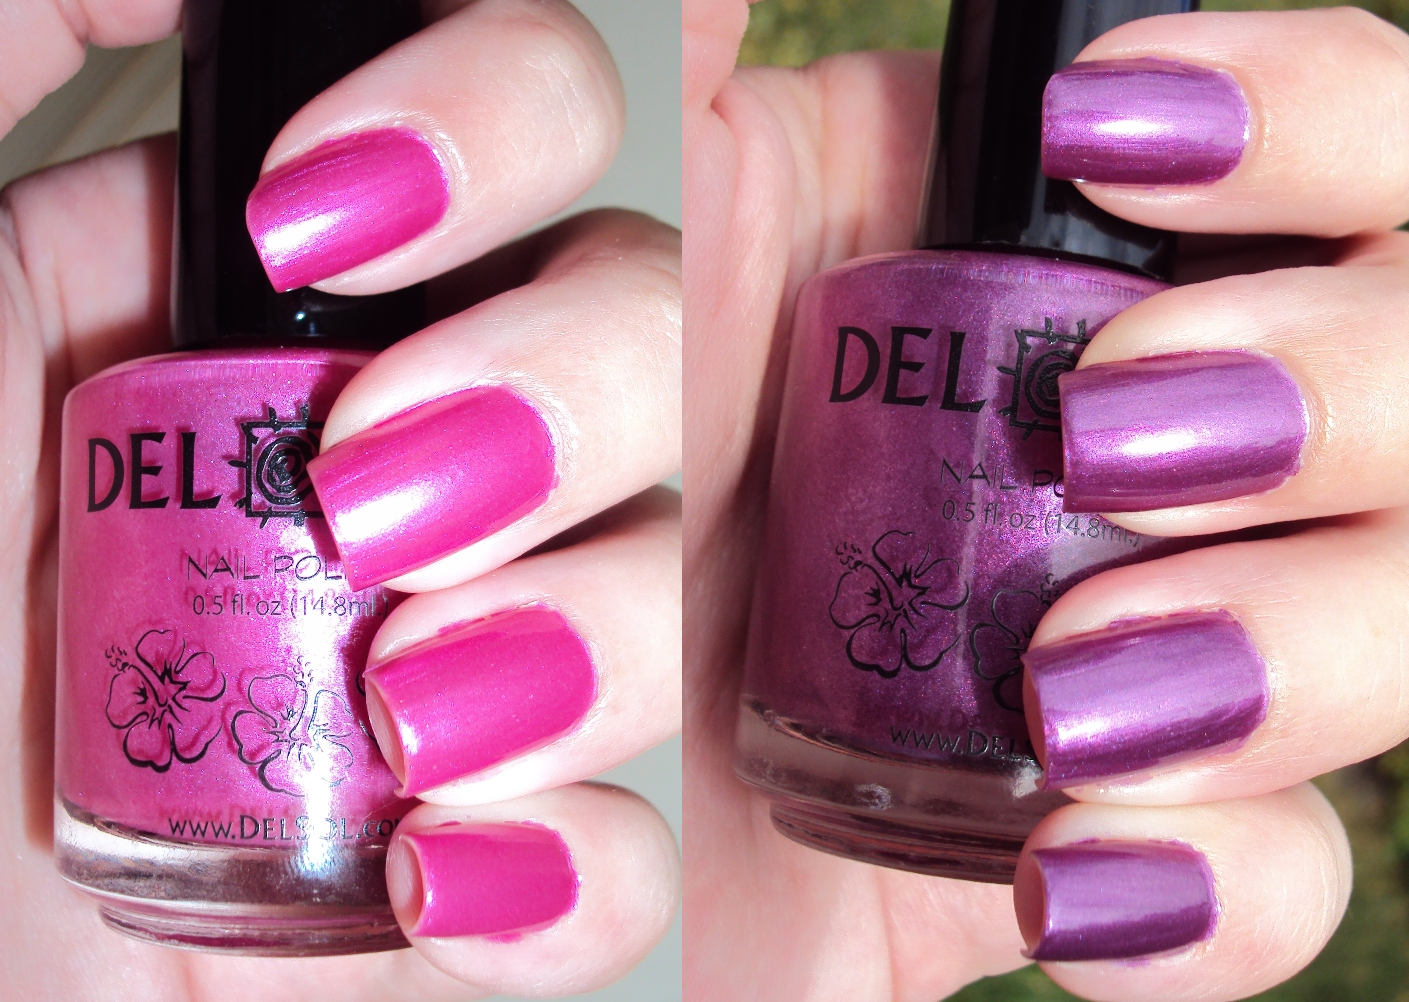 Del Sol: Foxy | Nail Polish I Want | Pinterest